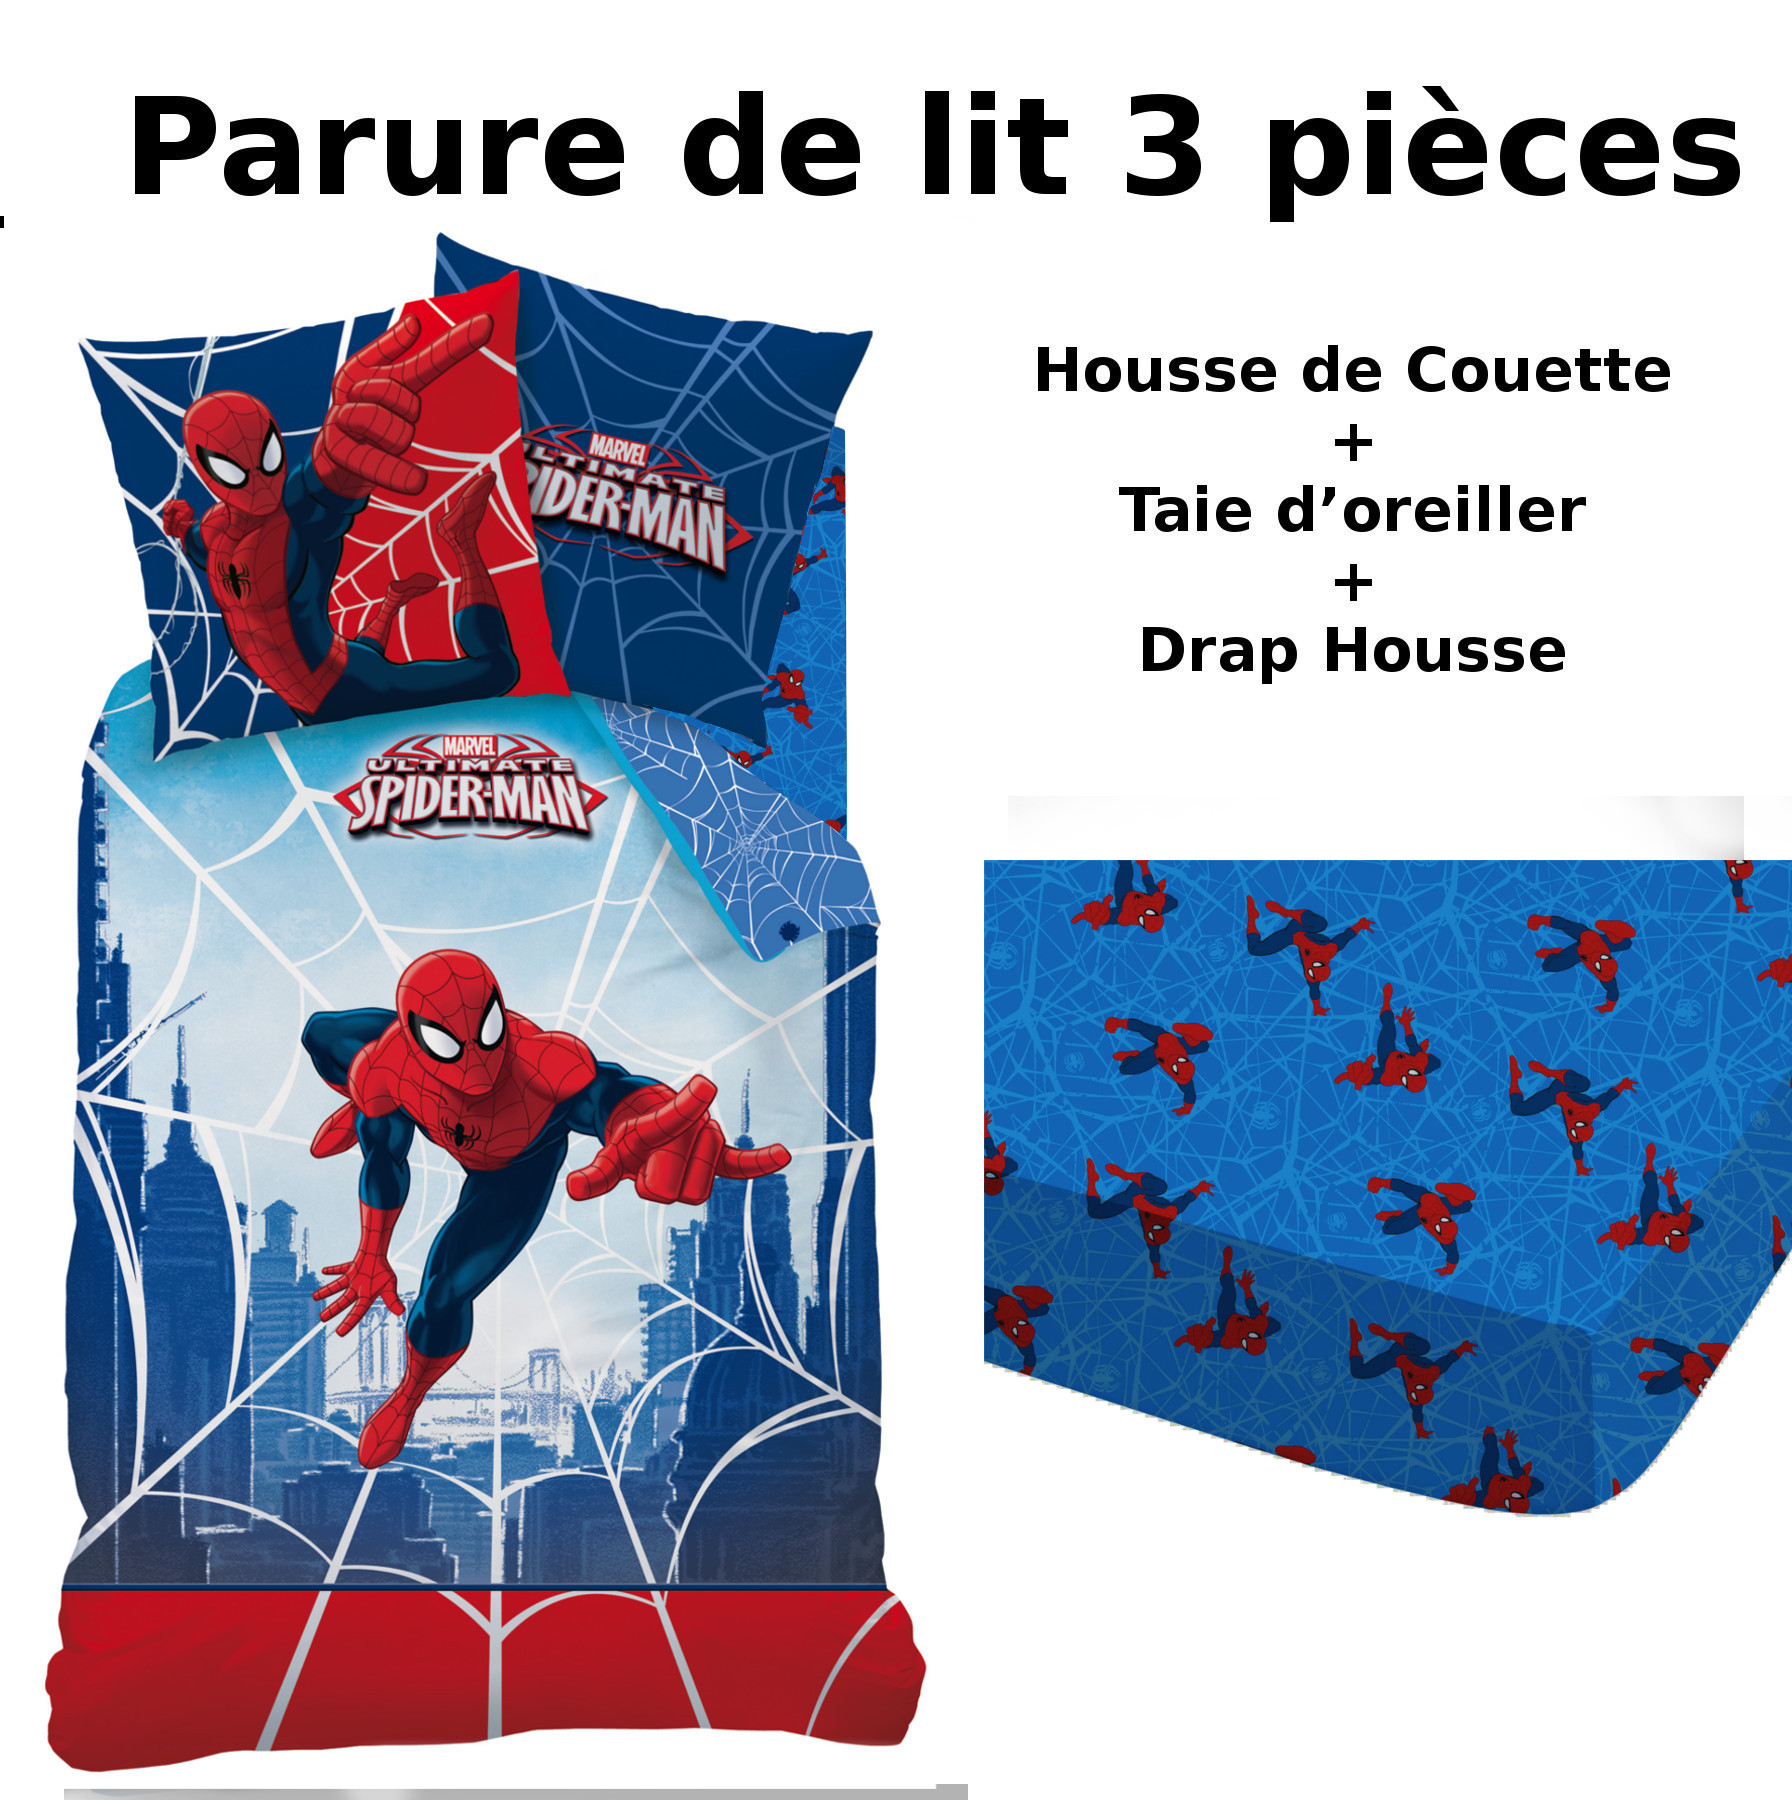 spiderman parure de lit 3pcs housse de couette taie d 39 oreiller drap housse web plc. Black Bedroom Furniture Sets. Home Design Ideas